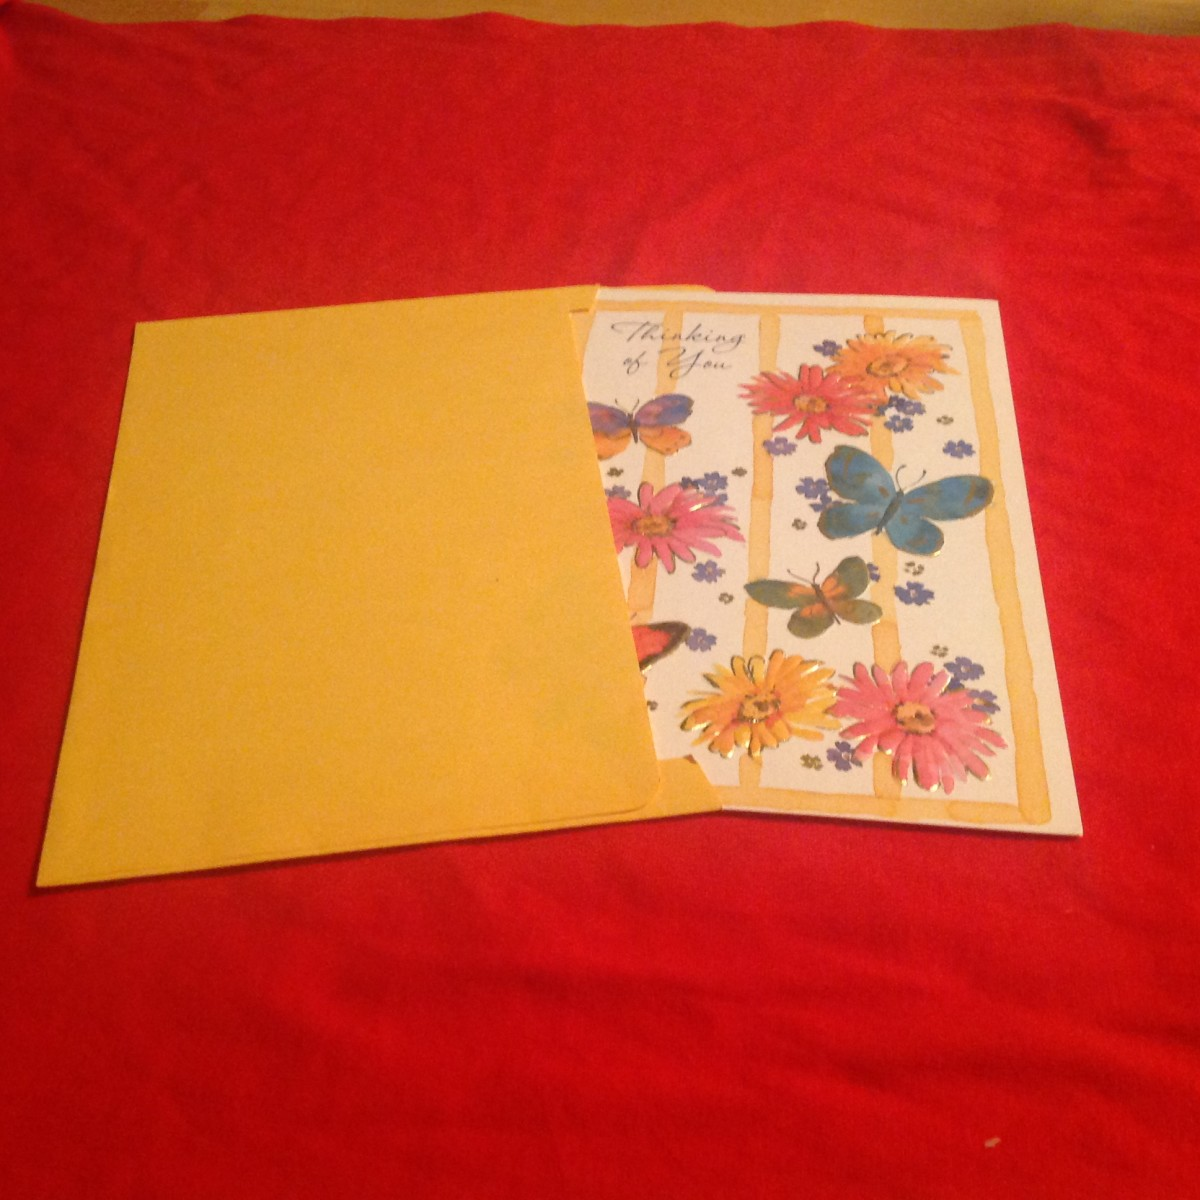 How to Put a Greeting Card in an Envelope